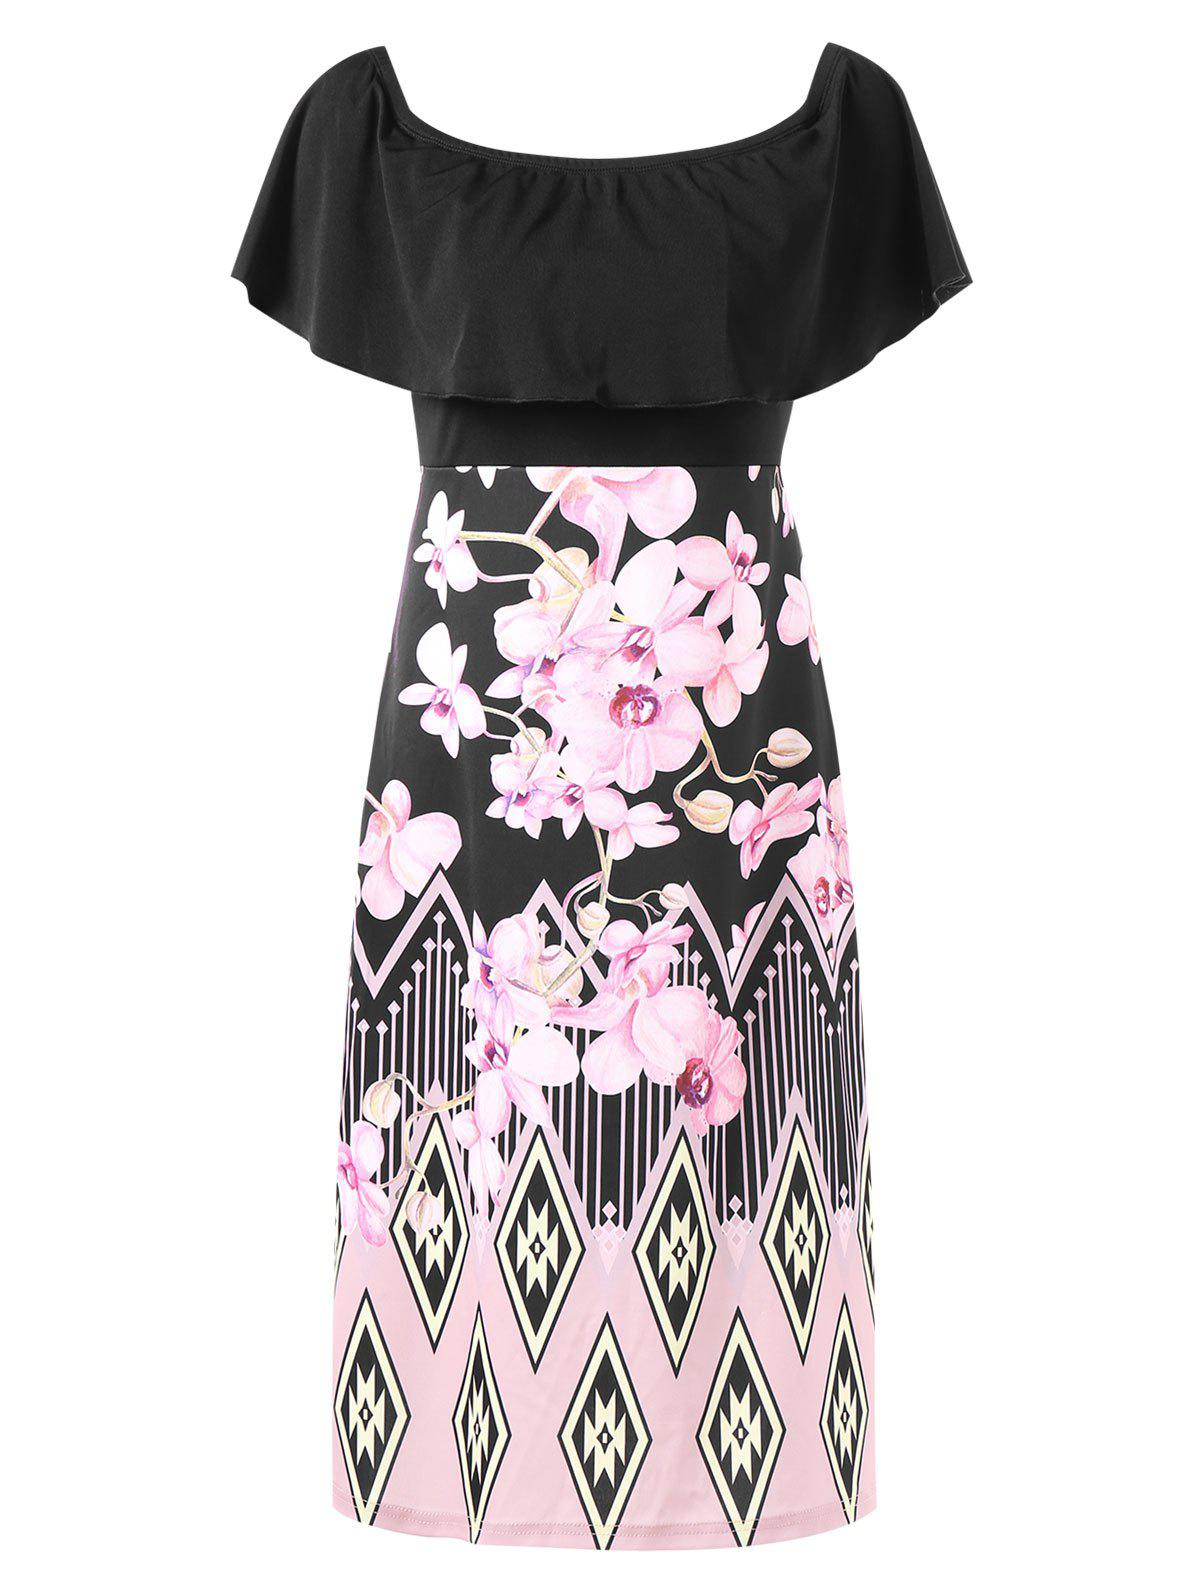 Fancy Floral Print Flounce Trim Knee Length Dress